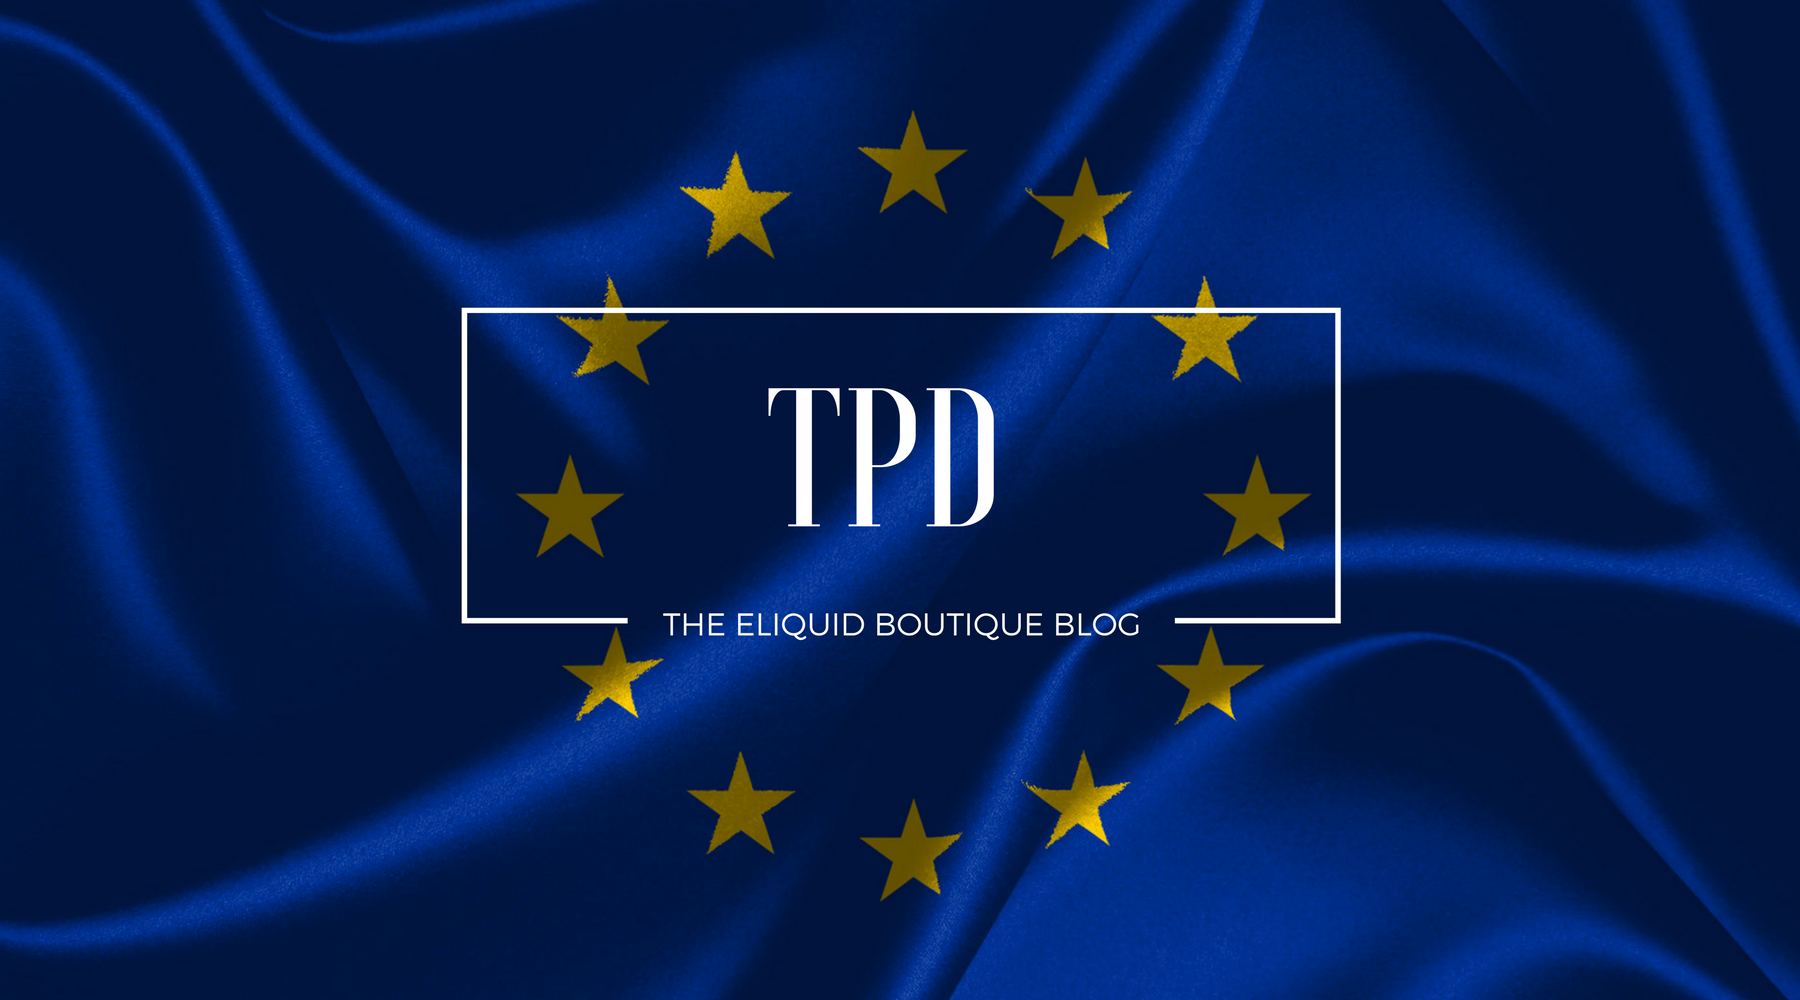 The Tobacco Products Directive E-Cigarettes Consultation Response